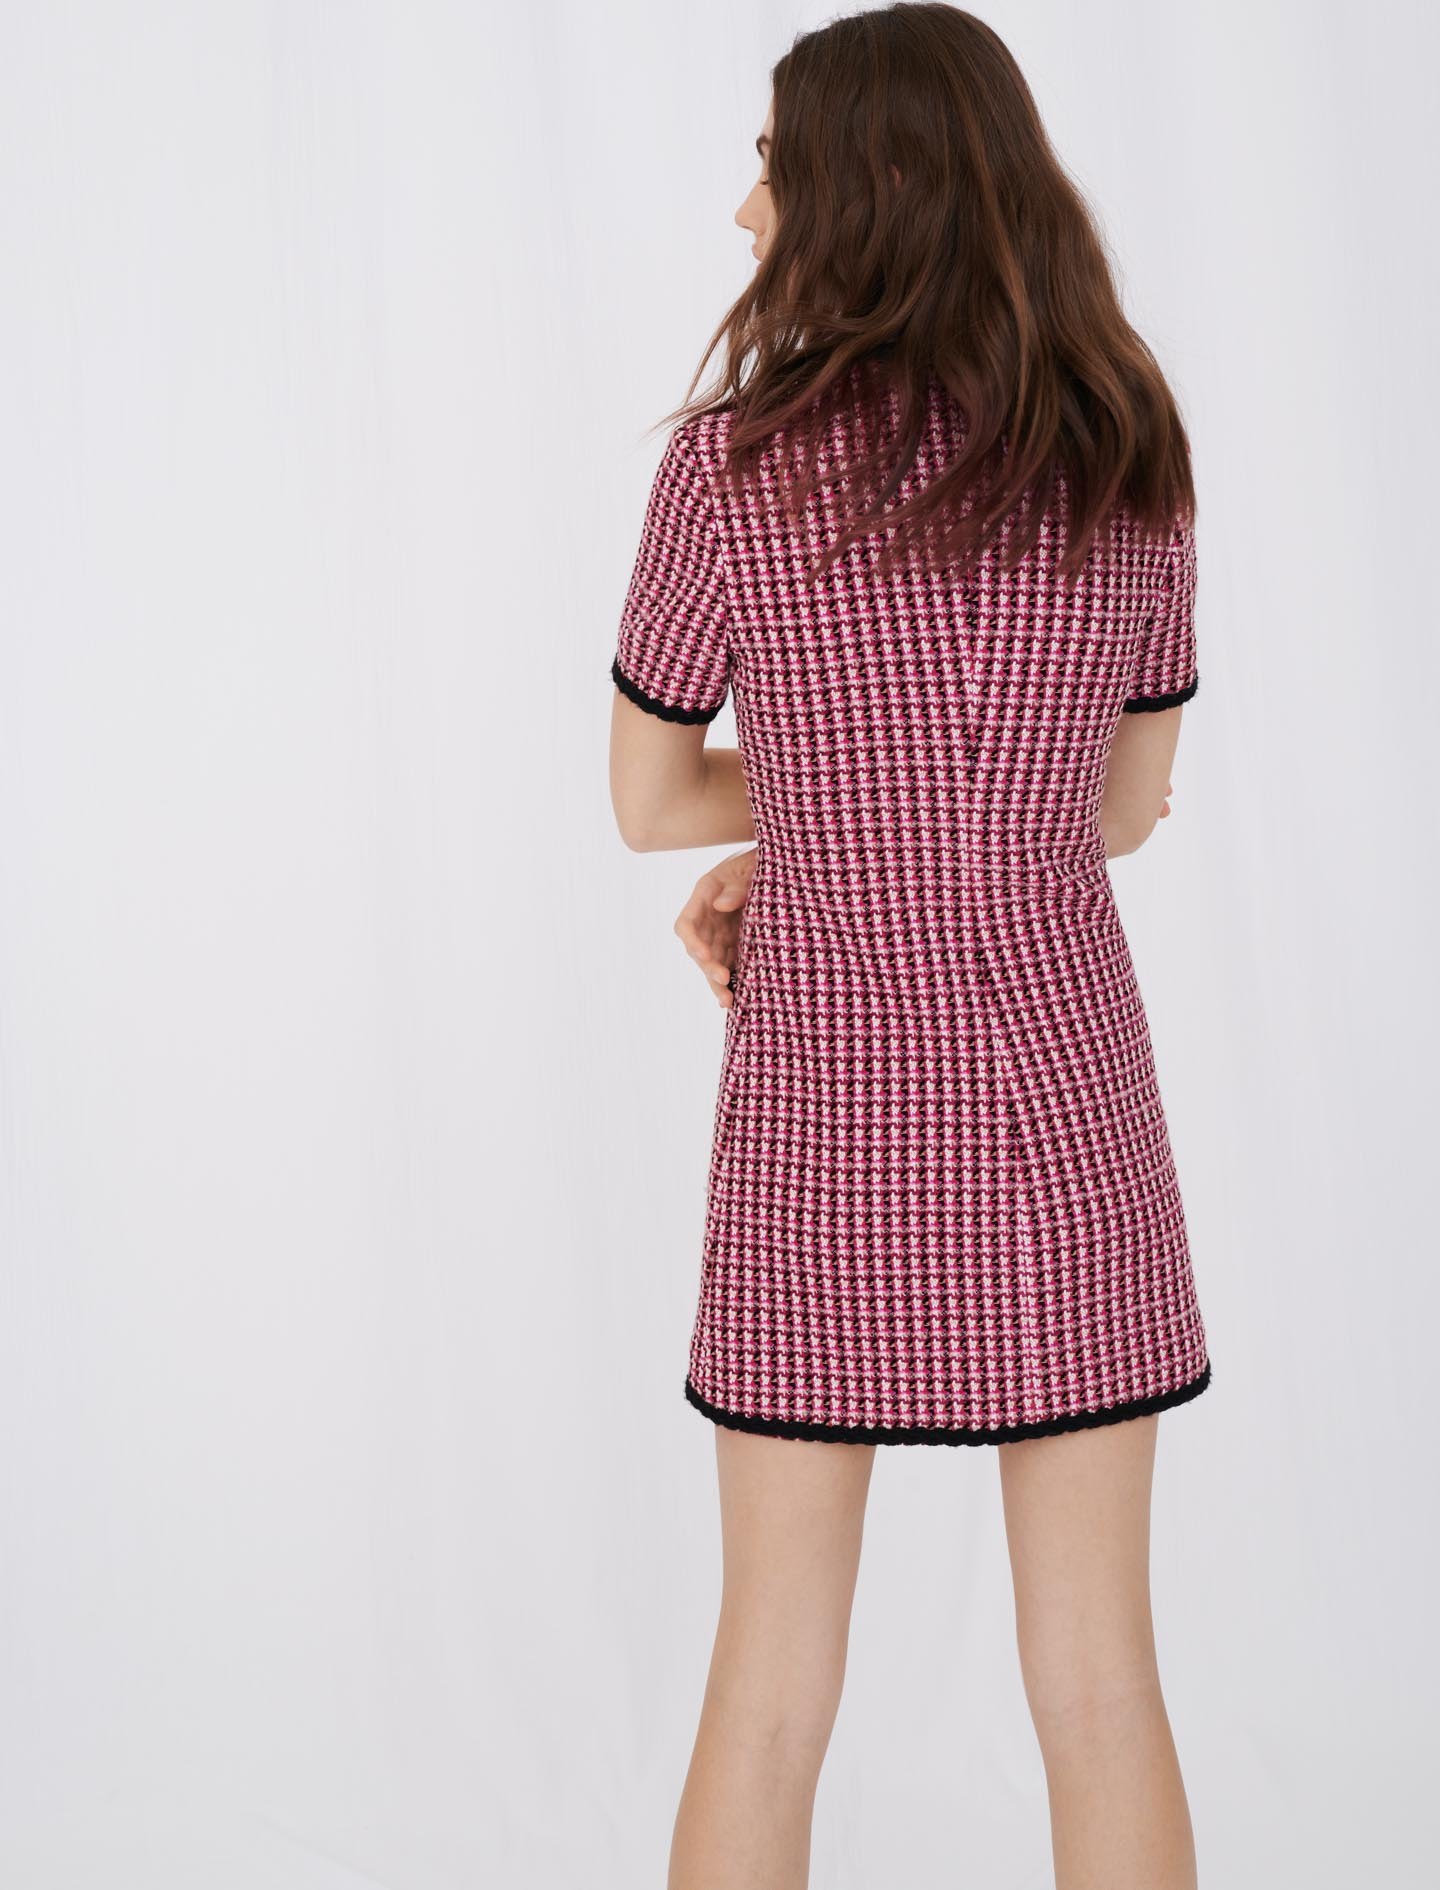 contrast tweed dress pink by maje paris